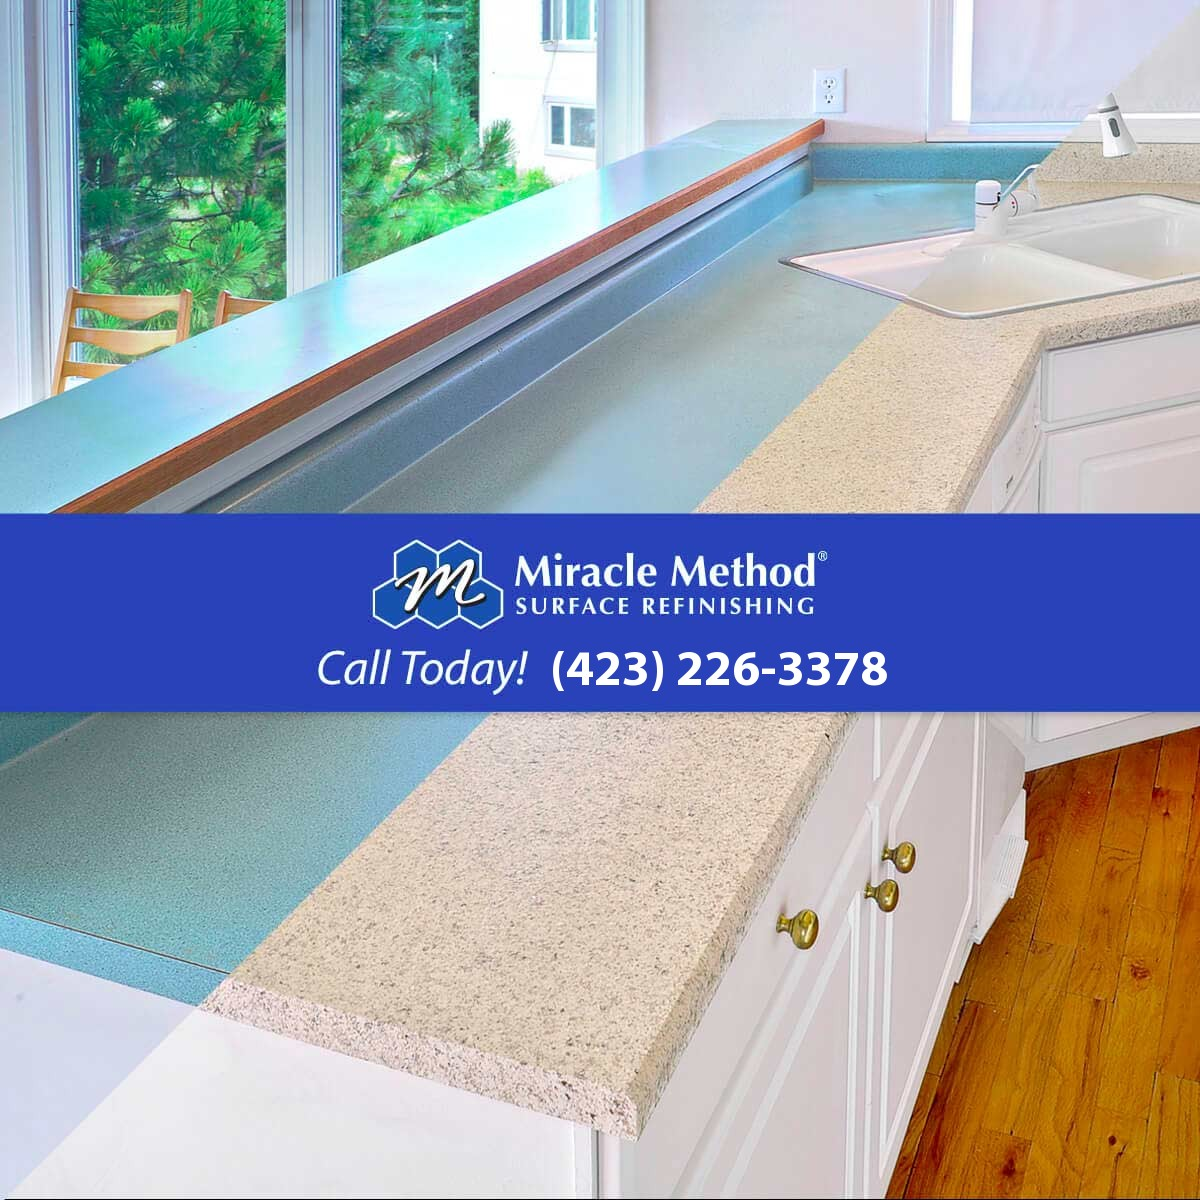 Bathtub Refinishing & Reglazing Reviews - Chattanooga, TN